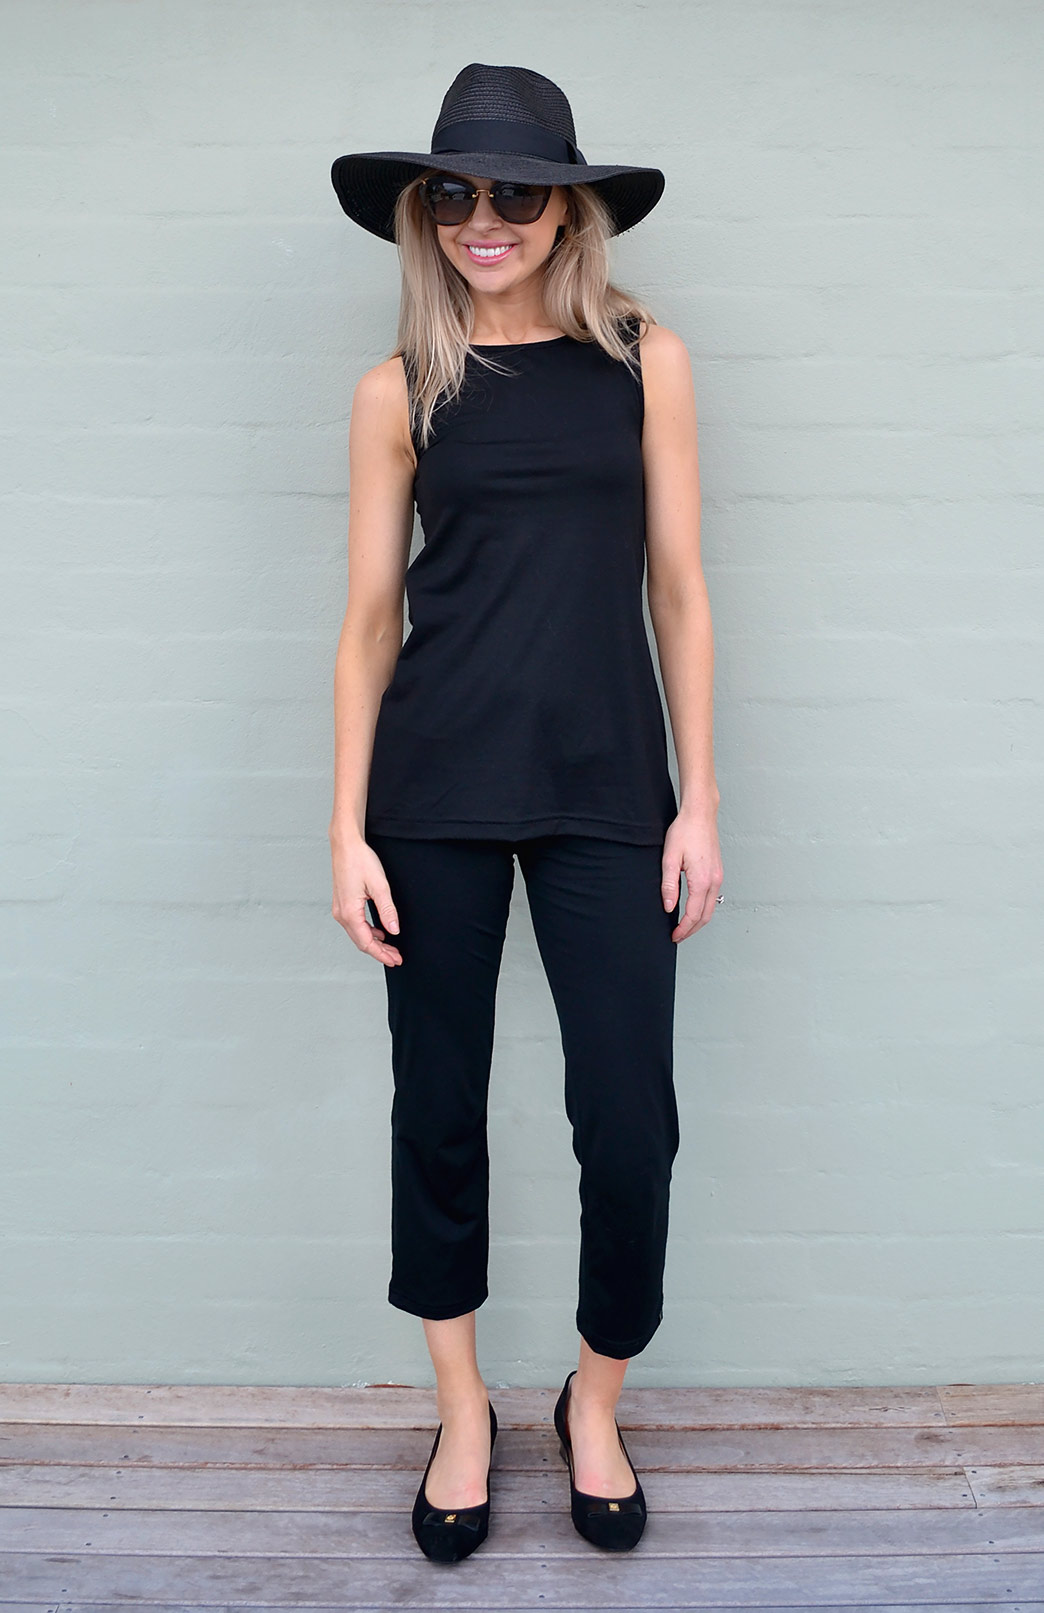 Capri Pants - Women's Black Merino Wool Lightweight 7/8th Crop Pants - Smitten Merino Tasmania Australia